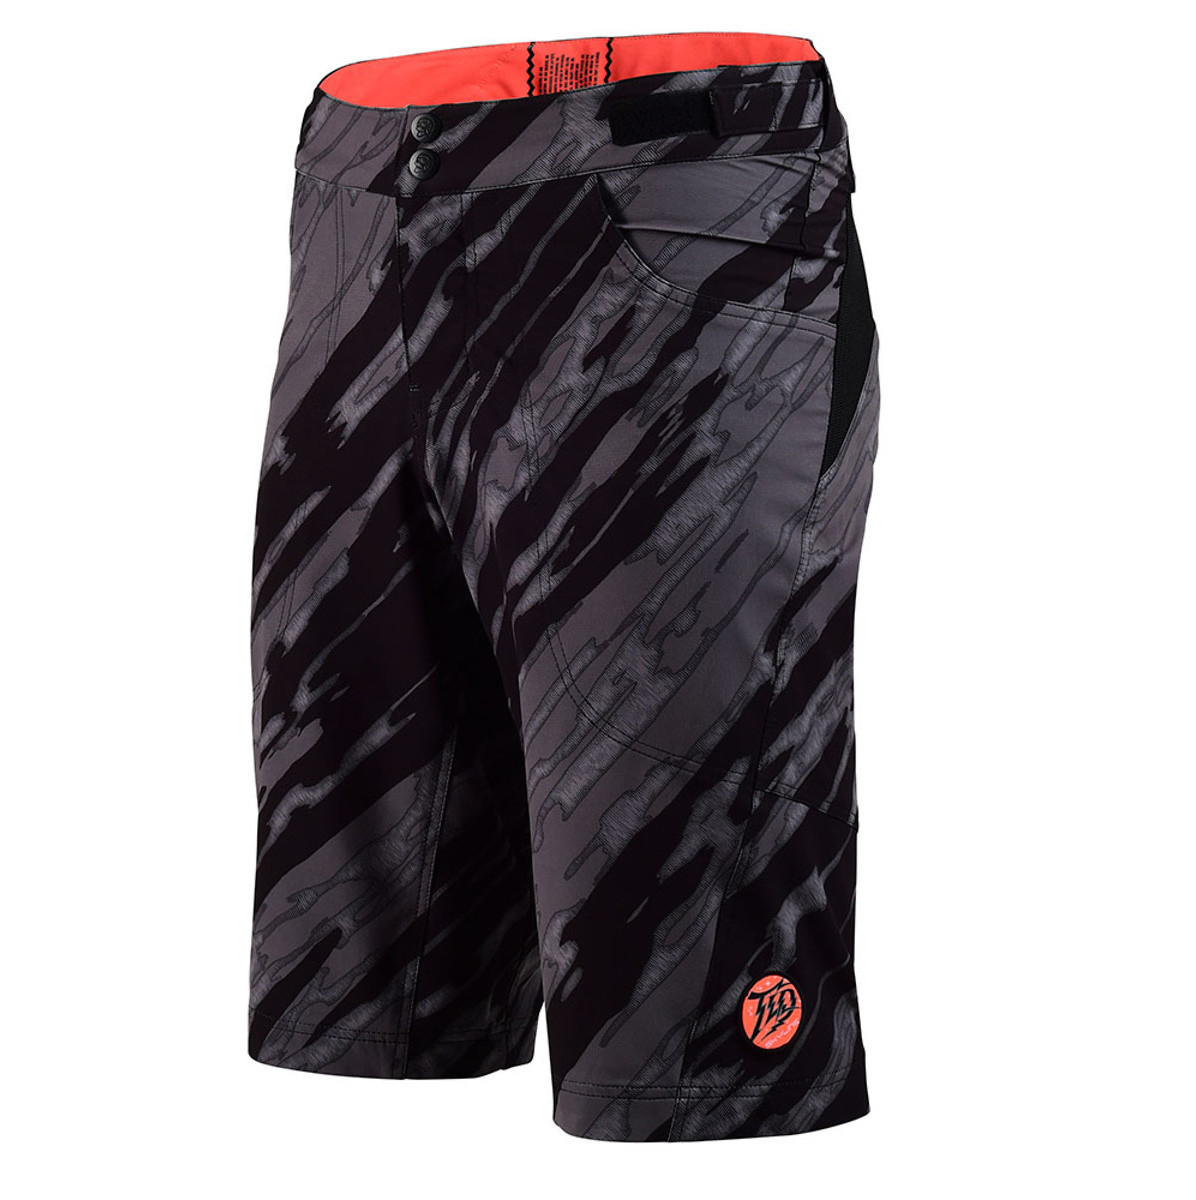 TLD Skyline Short - Ripstop Black. Related  Troy Lee Designs 6a2e14581